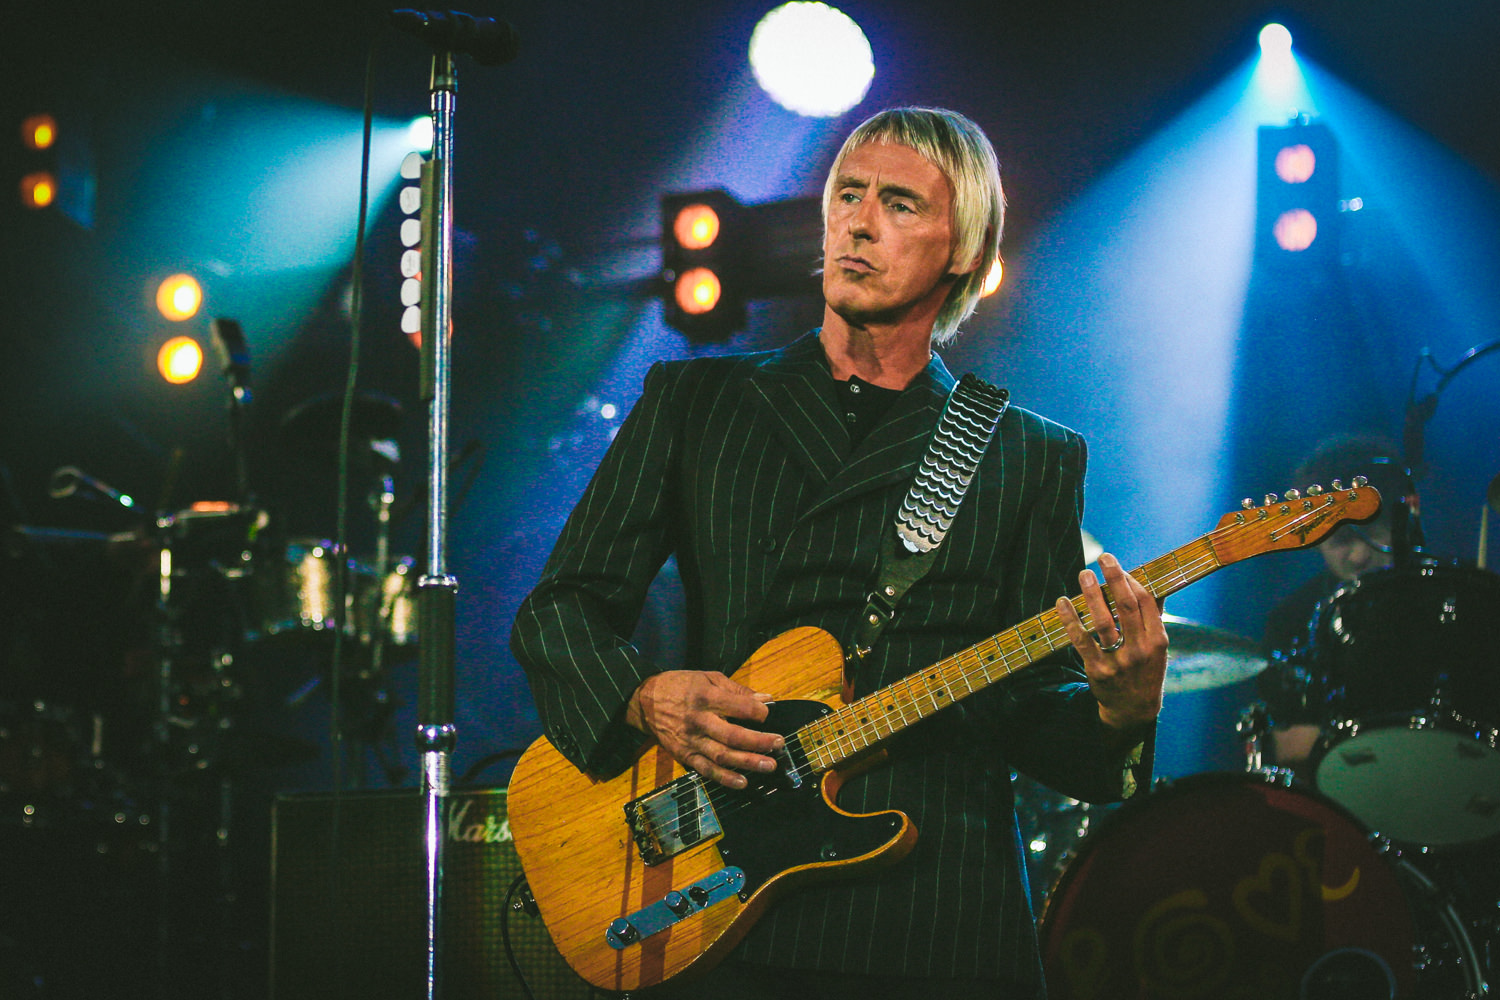 Vision board and Paul Weller images